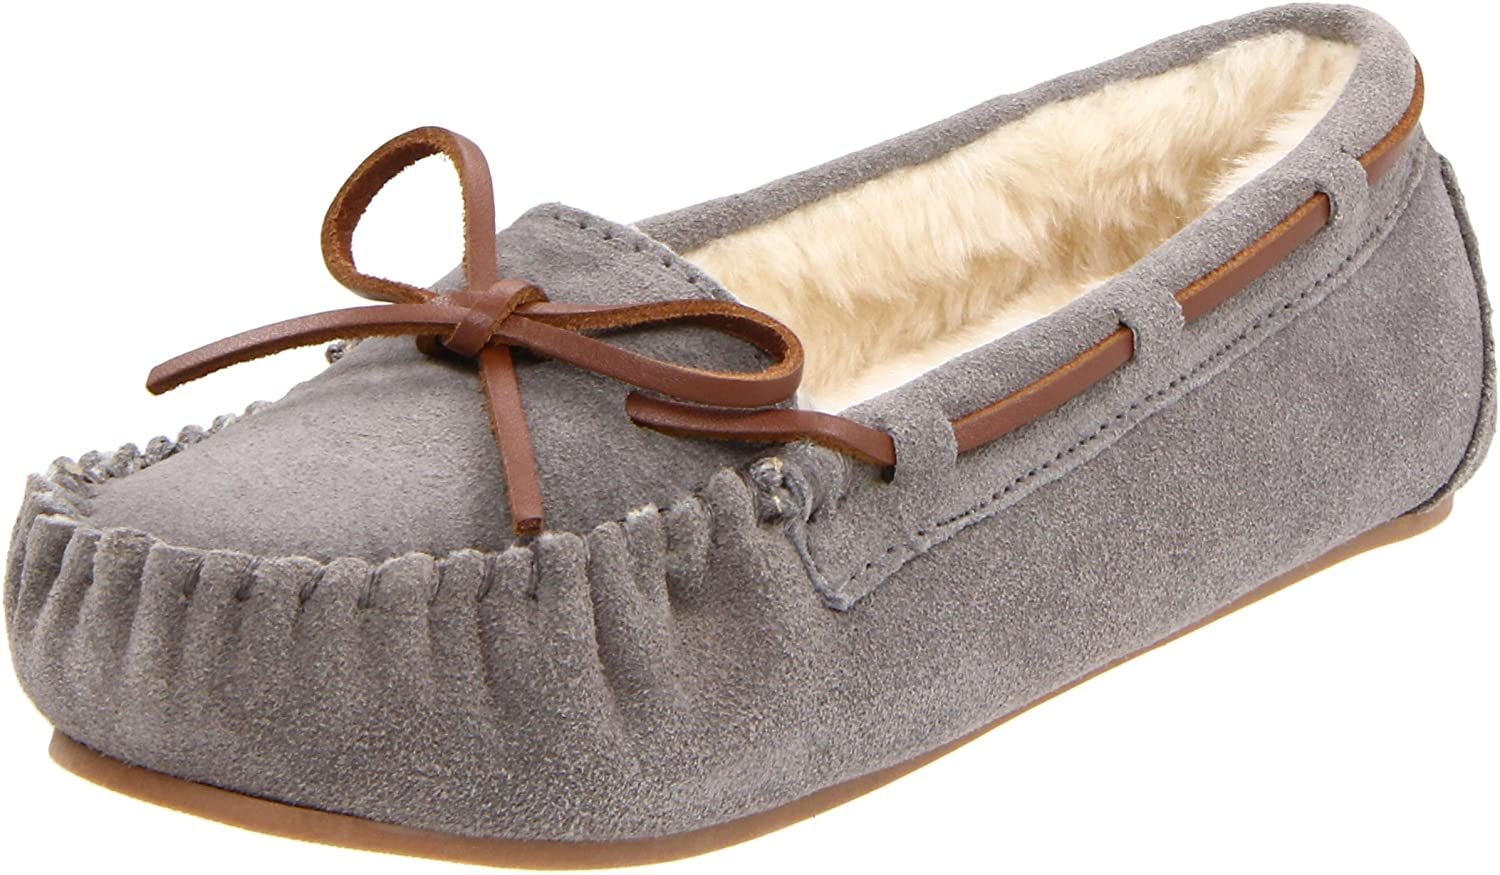 Tamarac by Slippers International Women's Low Molly Faux Slipper Blitz B004XWGGJK 6 B(M) US|Grey